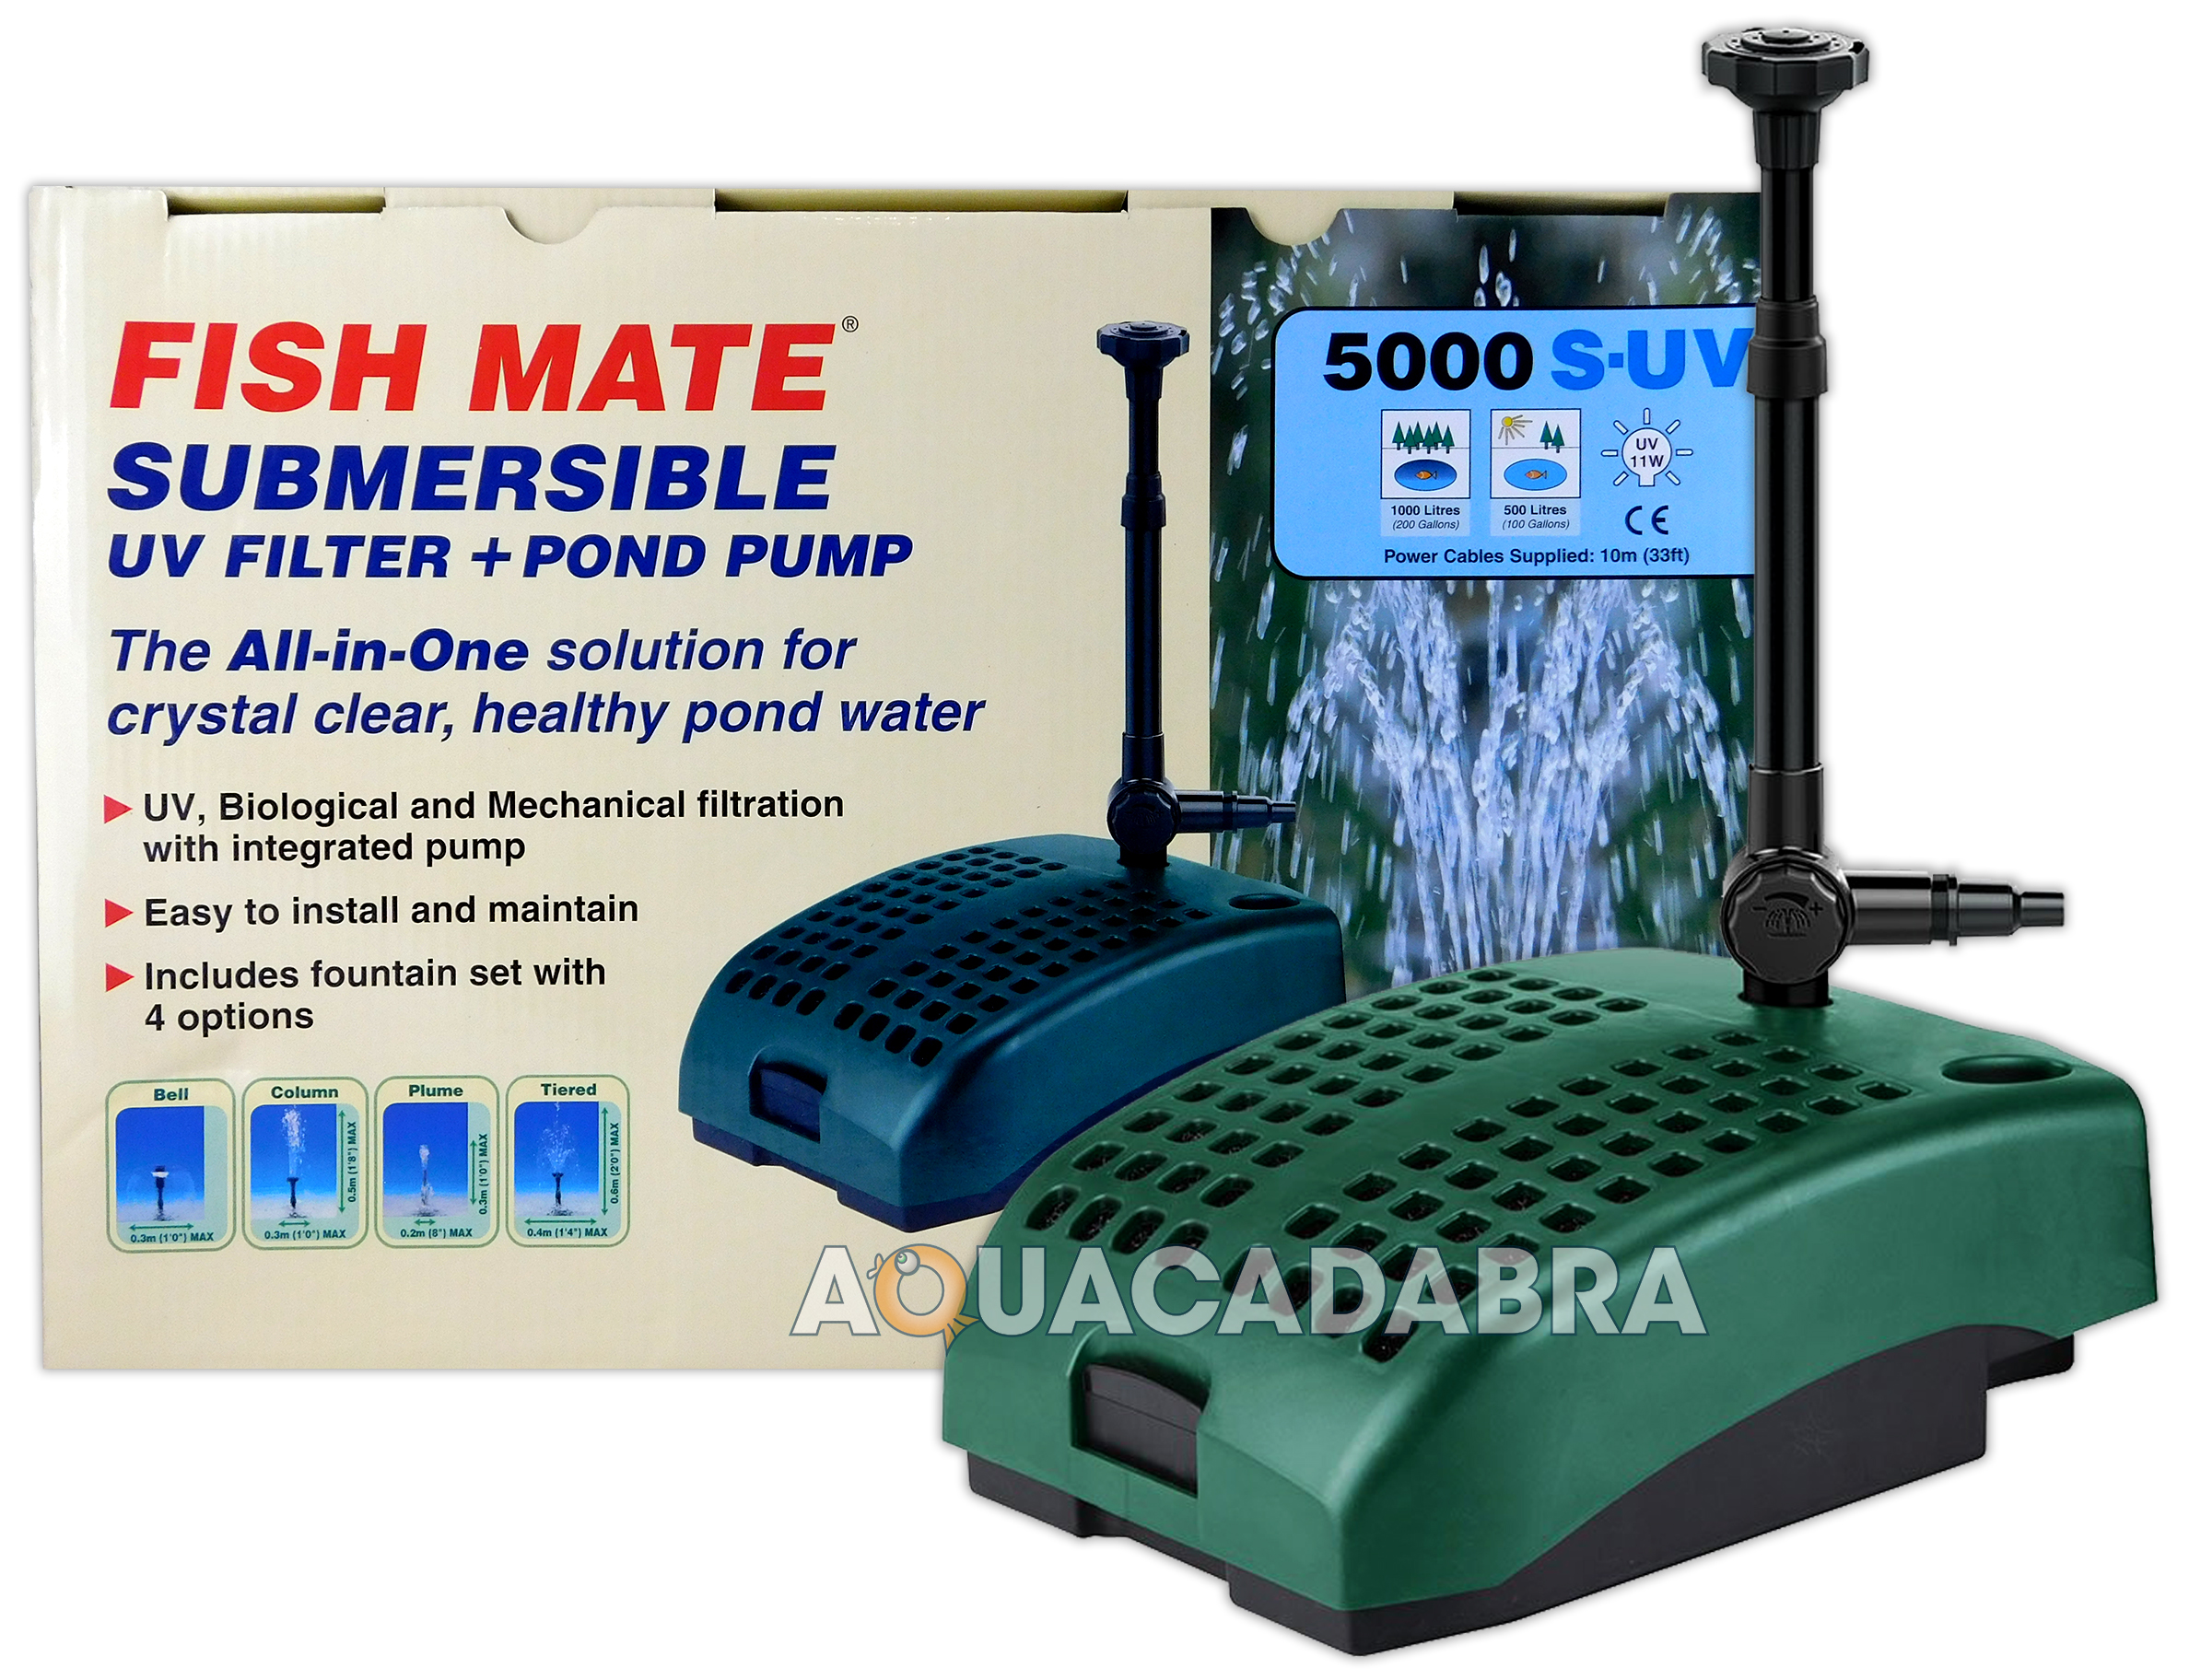 Fish mate 5000 suv submersible uv filter pump all in one for Set up pond filter system